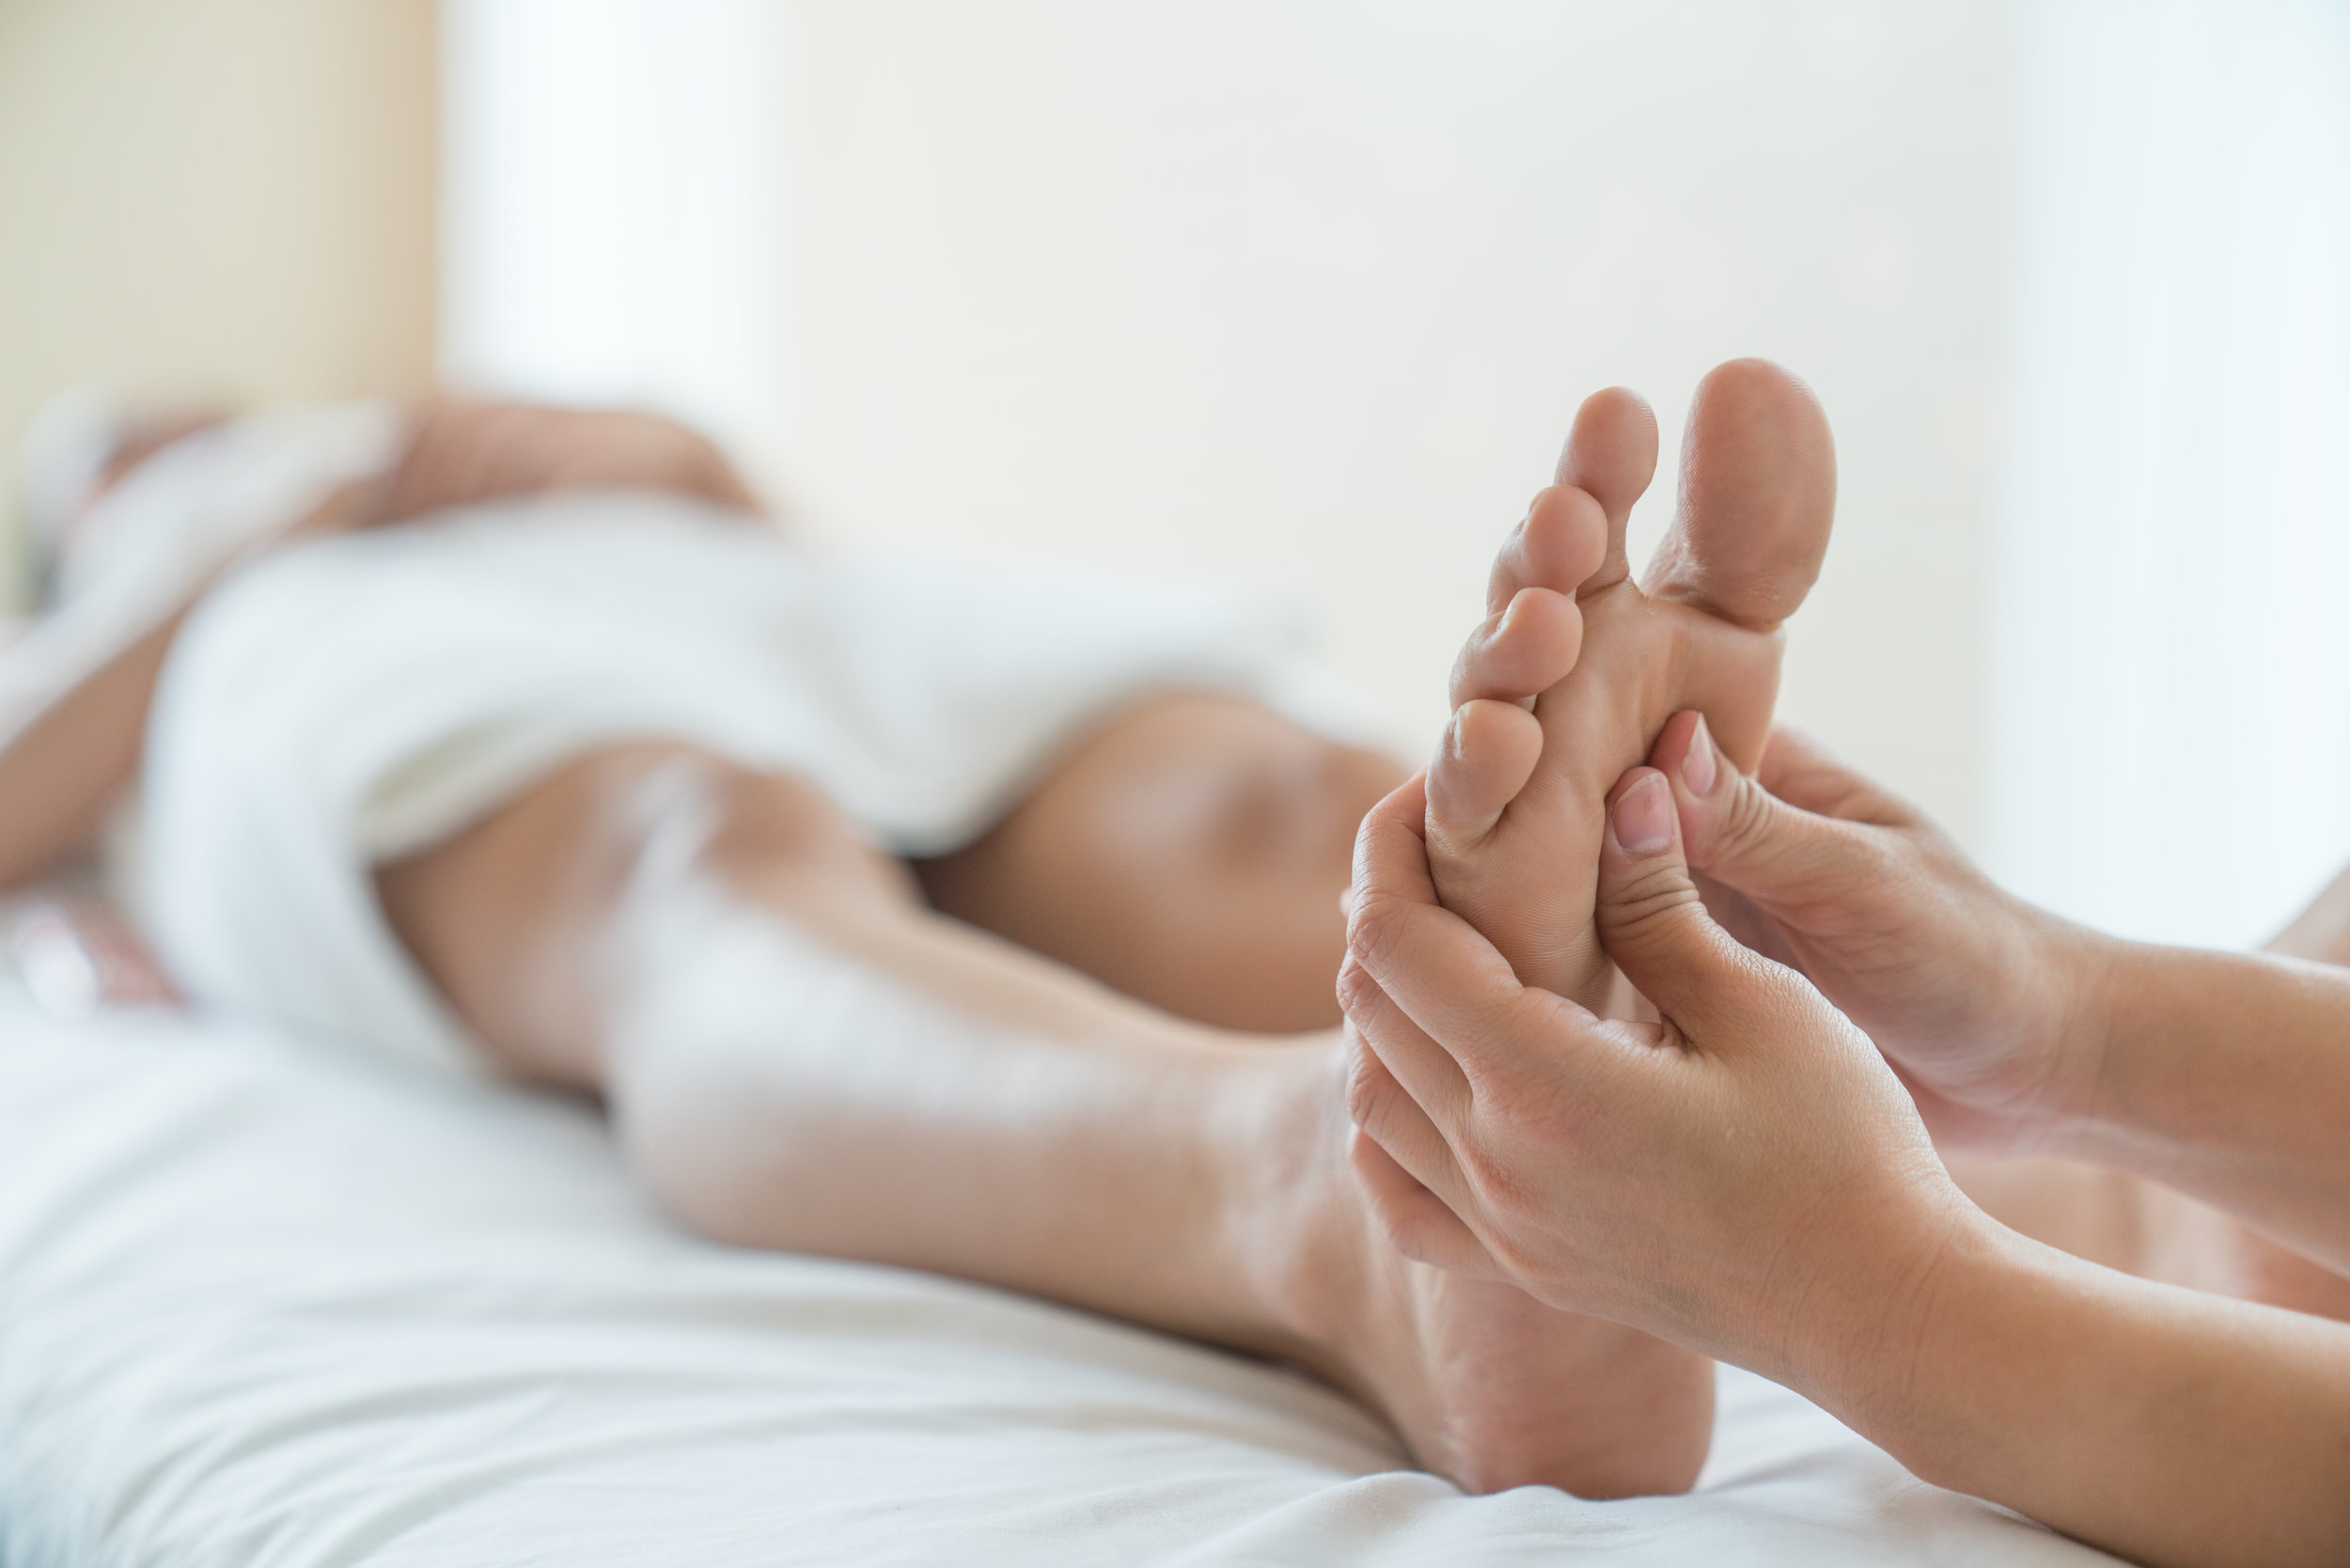 Reflexology Massage - Enjoy a head, shoulder, and arm massage while your hands and feet soak in a soothing warm water bath.Click here to see add-on services!Rates:30 minutes $40 Regular | $30 Member60 minutes $60 Regular | $50 Member90 minutes $90 Regular | $75 Member